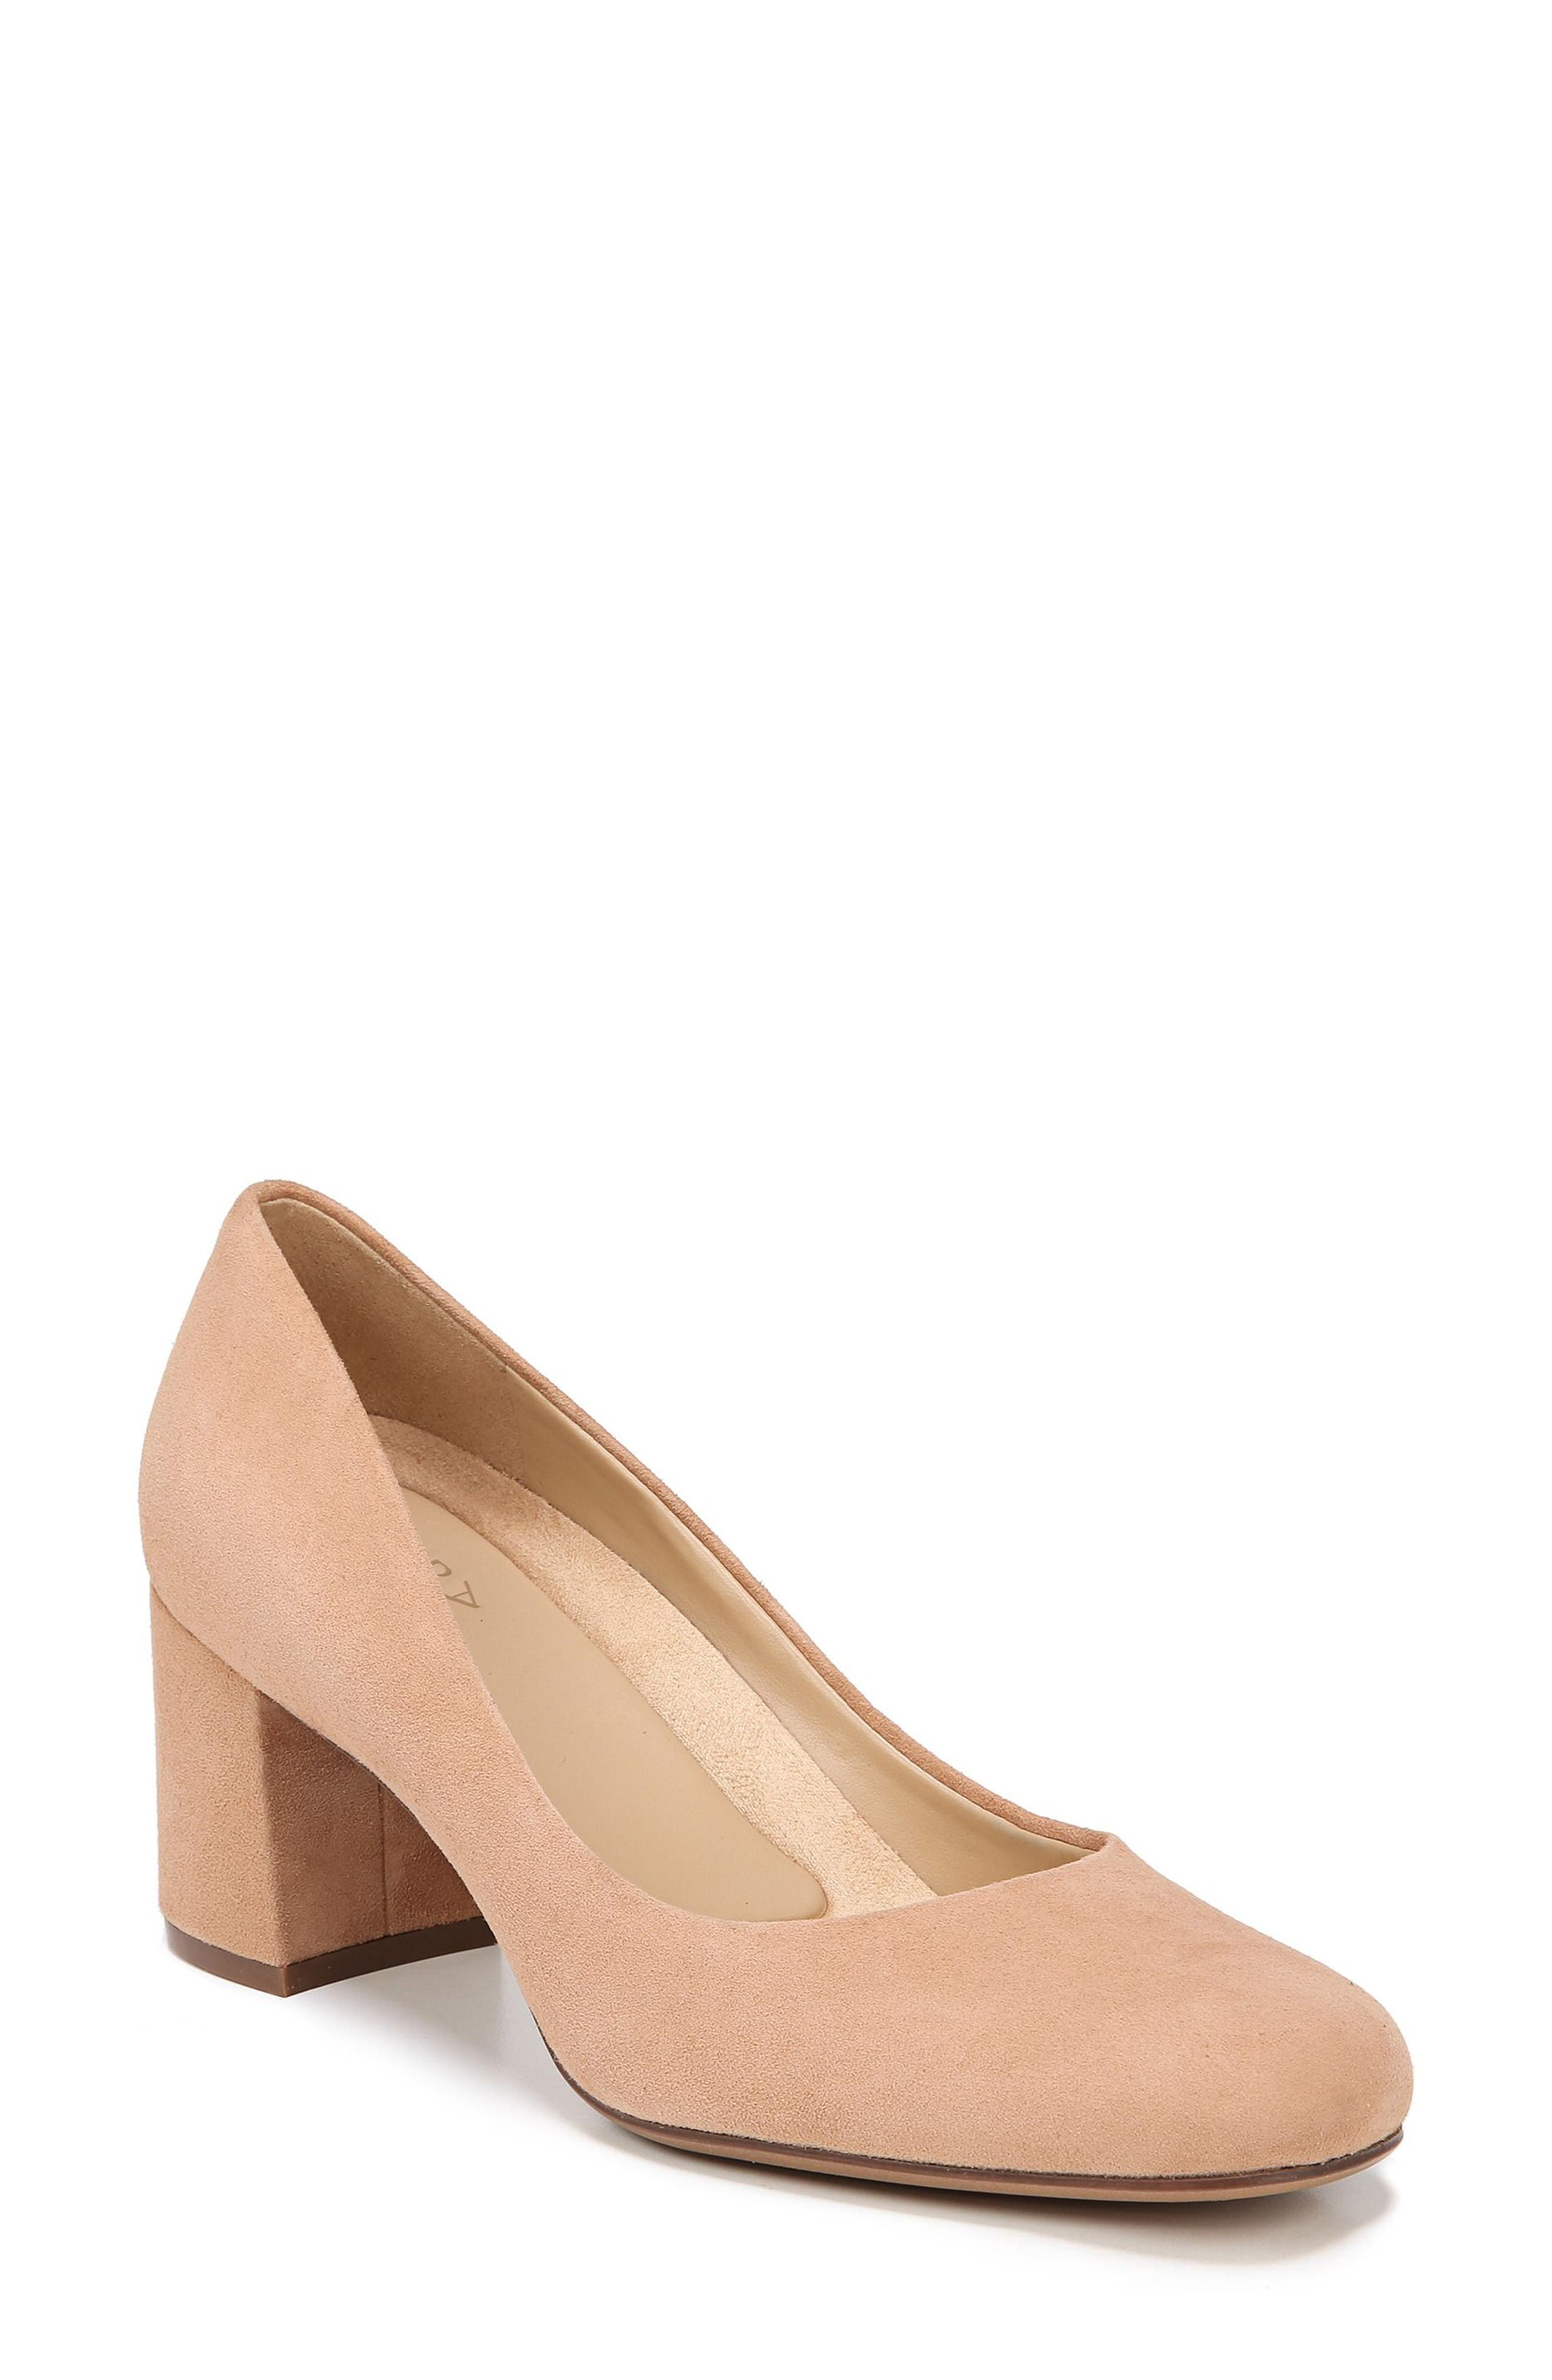 Whitney Pump,                         Main,                         color, COOKIE DOUGH SUEDE